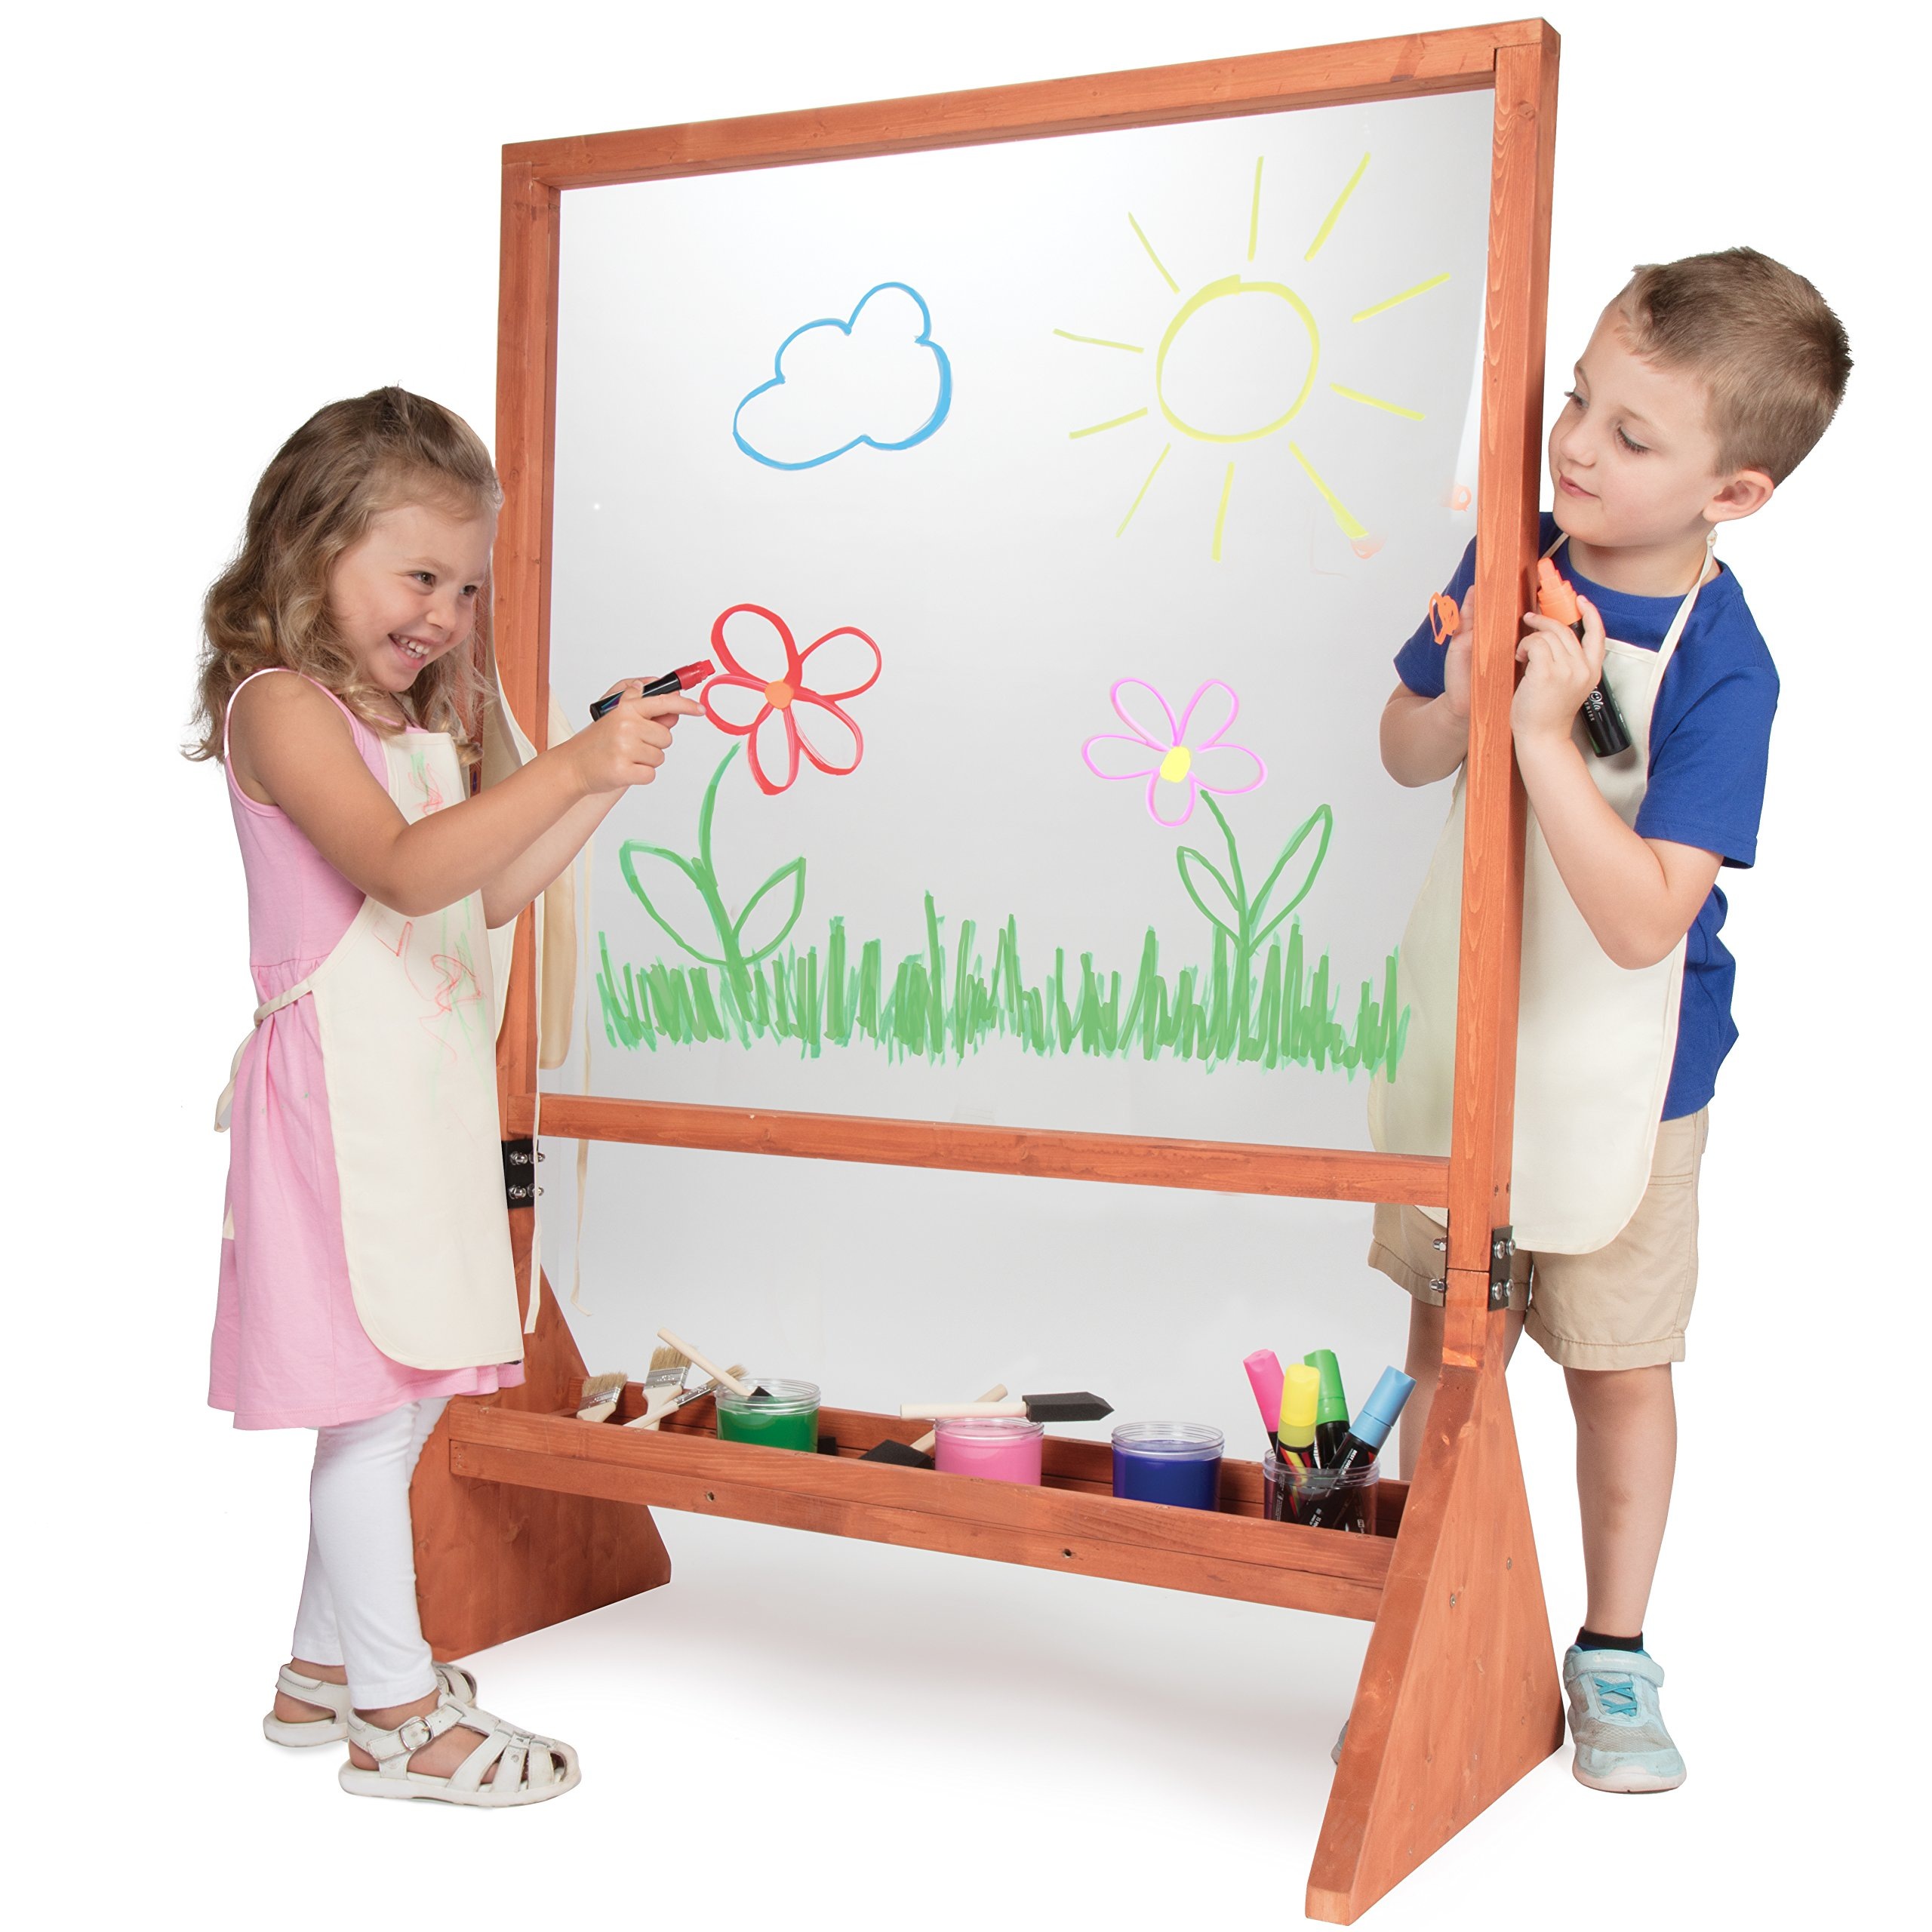 Double Sided Indoor/Outdoor Plexiglass Art Easel (21 x 36 x 51 in) - Easy to Clean, Kids Can Draw or Paint On Both Sides